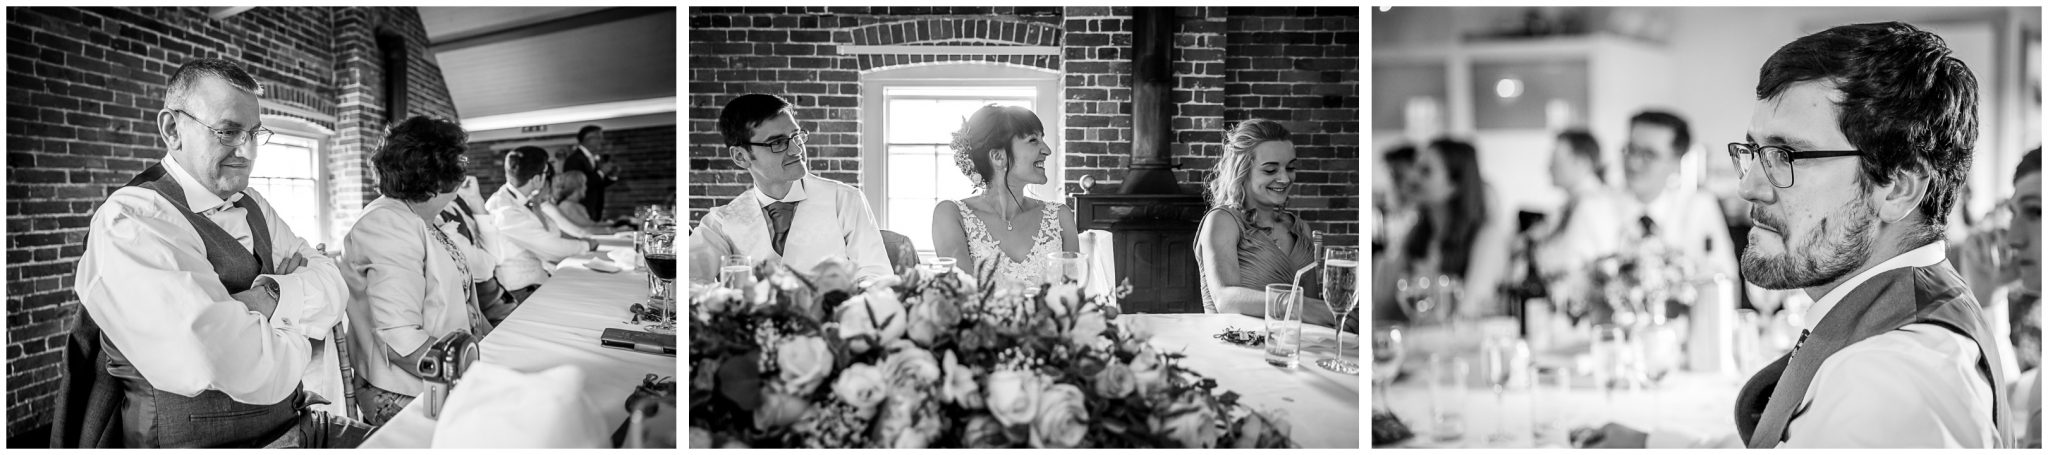 Sopley Mill wedding photography candid photographs during speeches